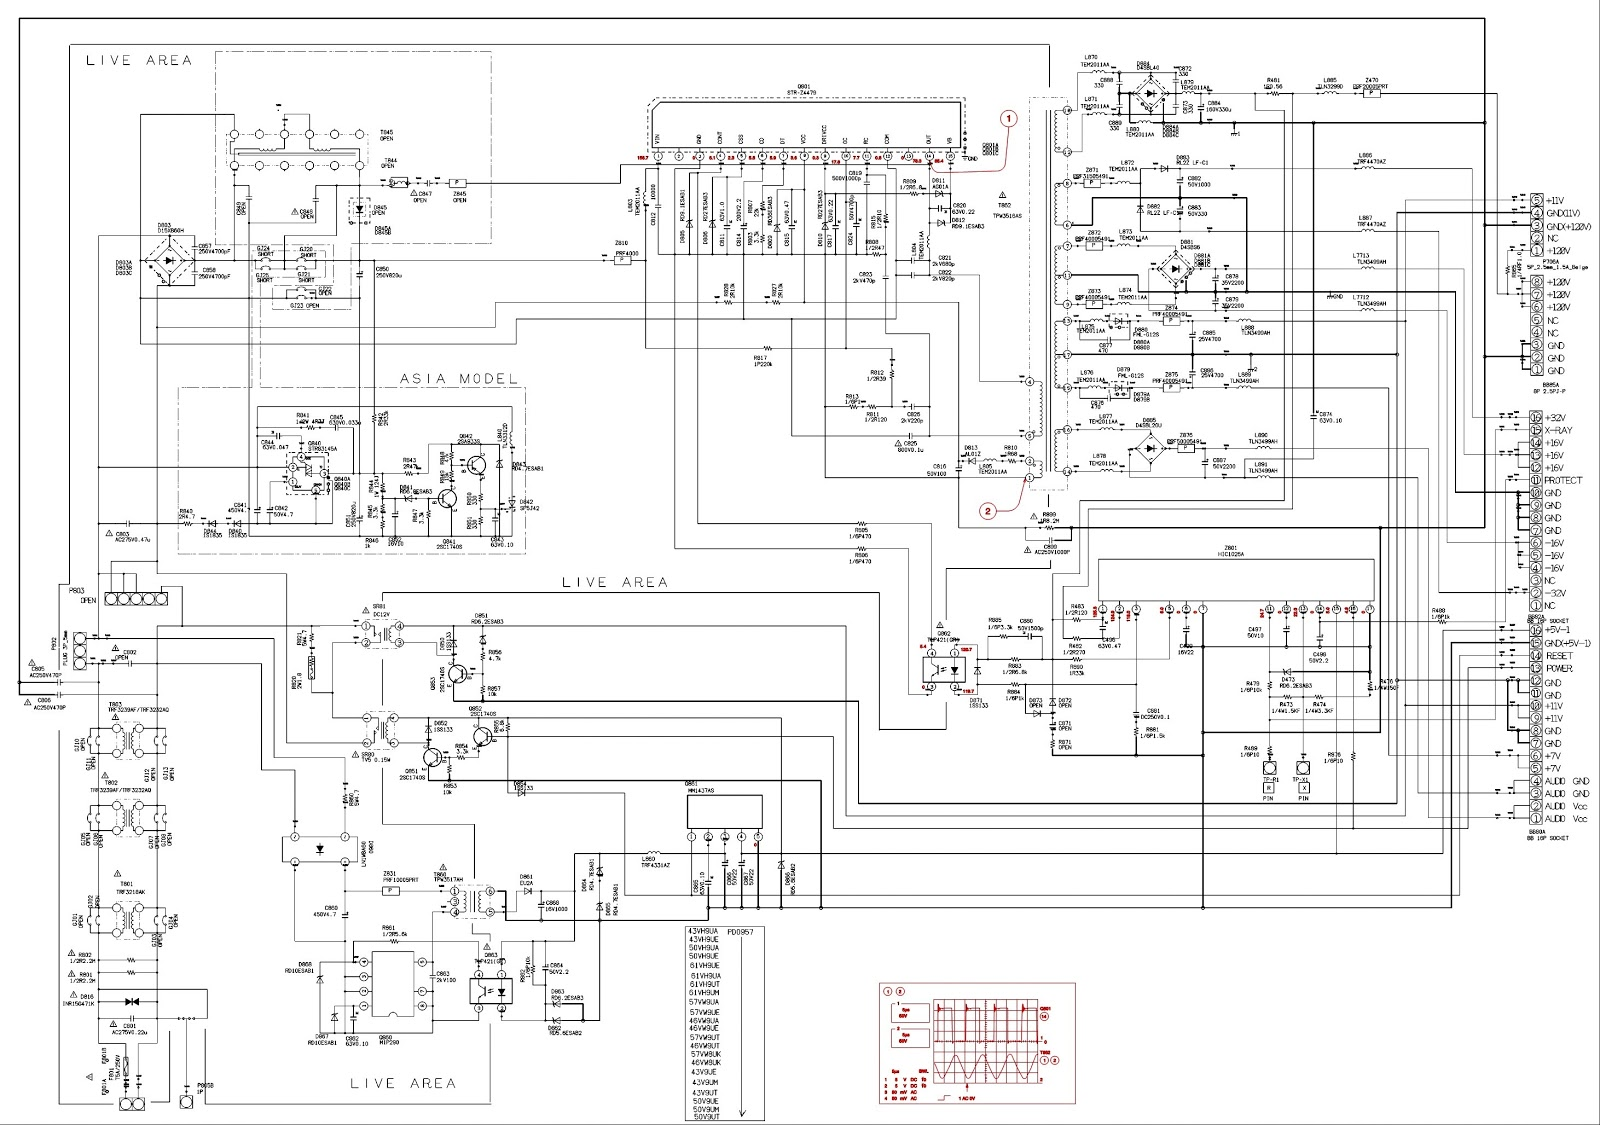 medium resolution of toshiba external wiring diagrams wiring diagram origin split ac system diagram toshiba drive wiring diagram